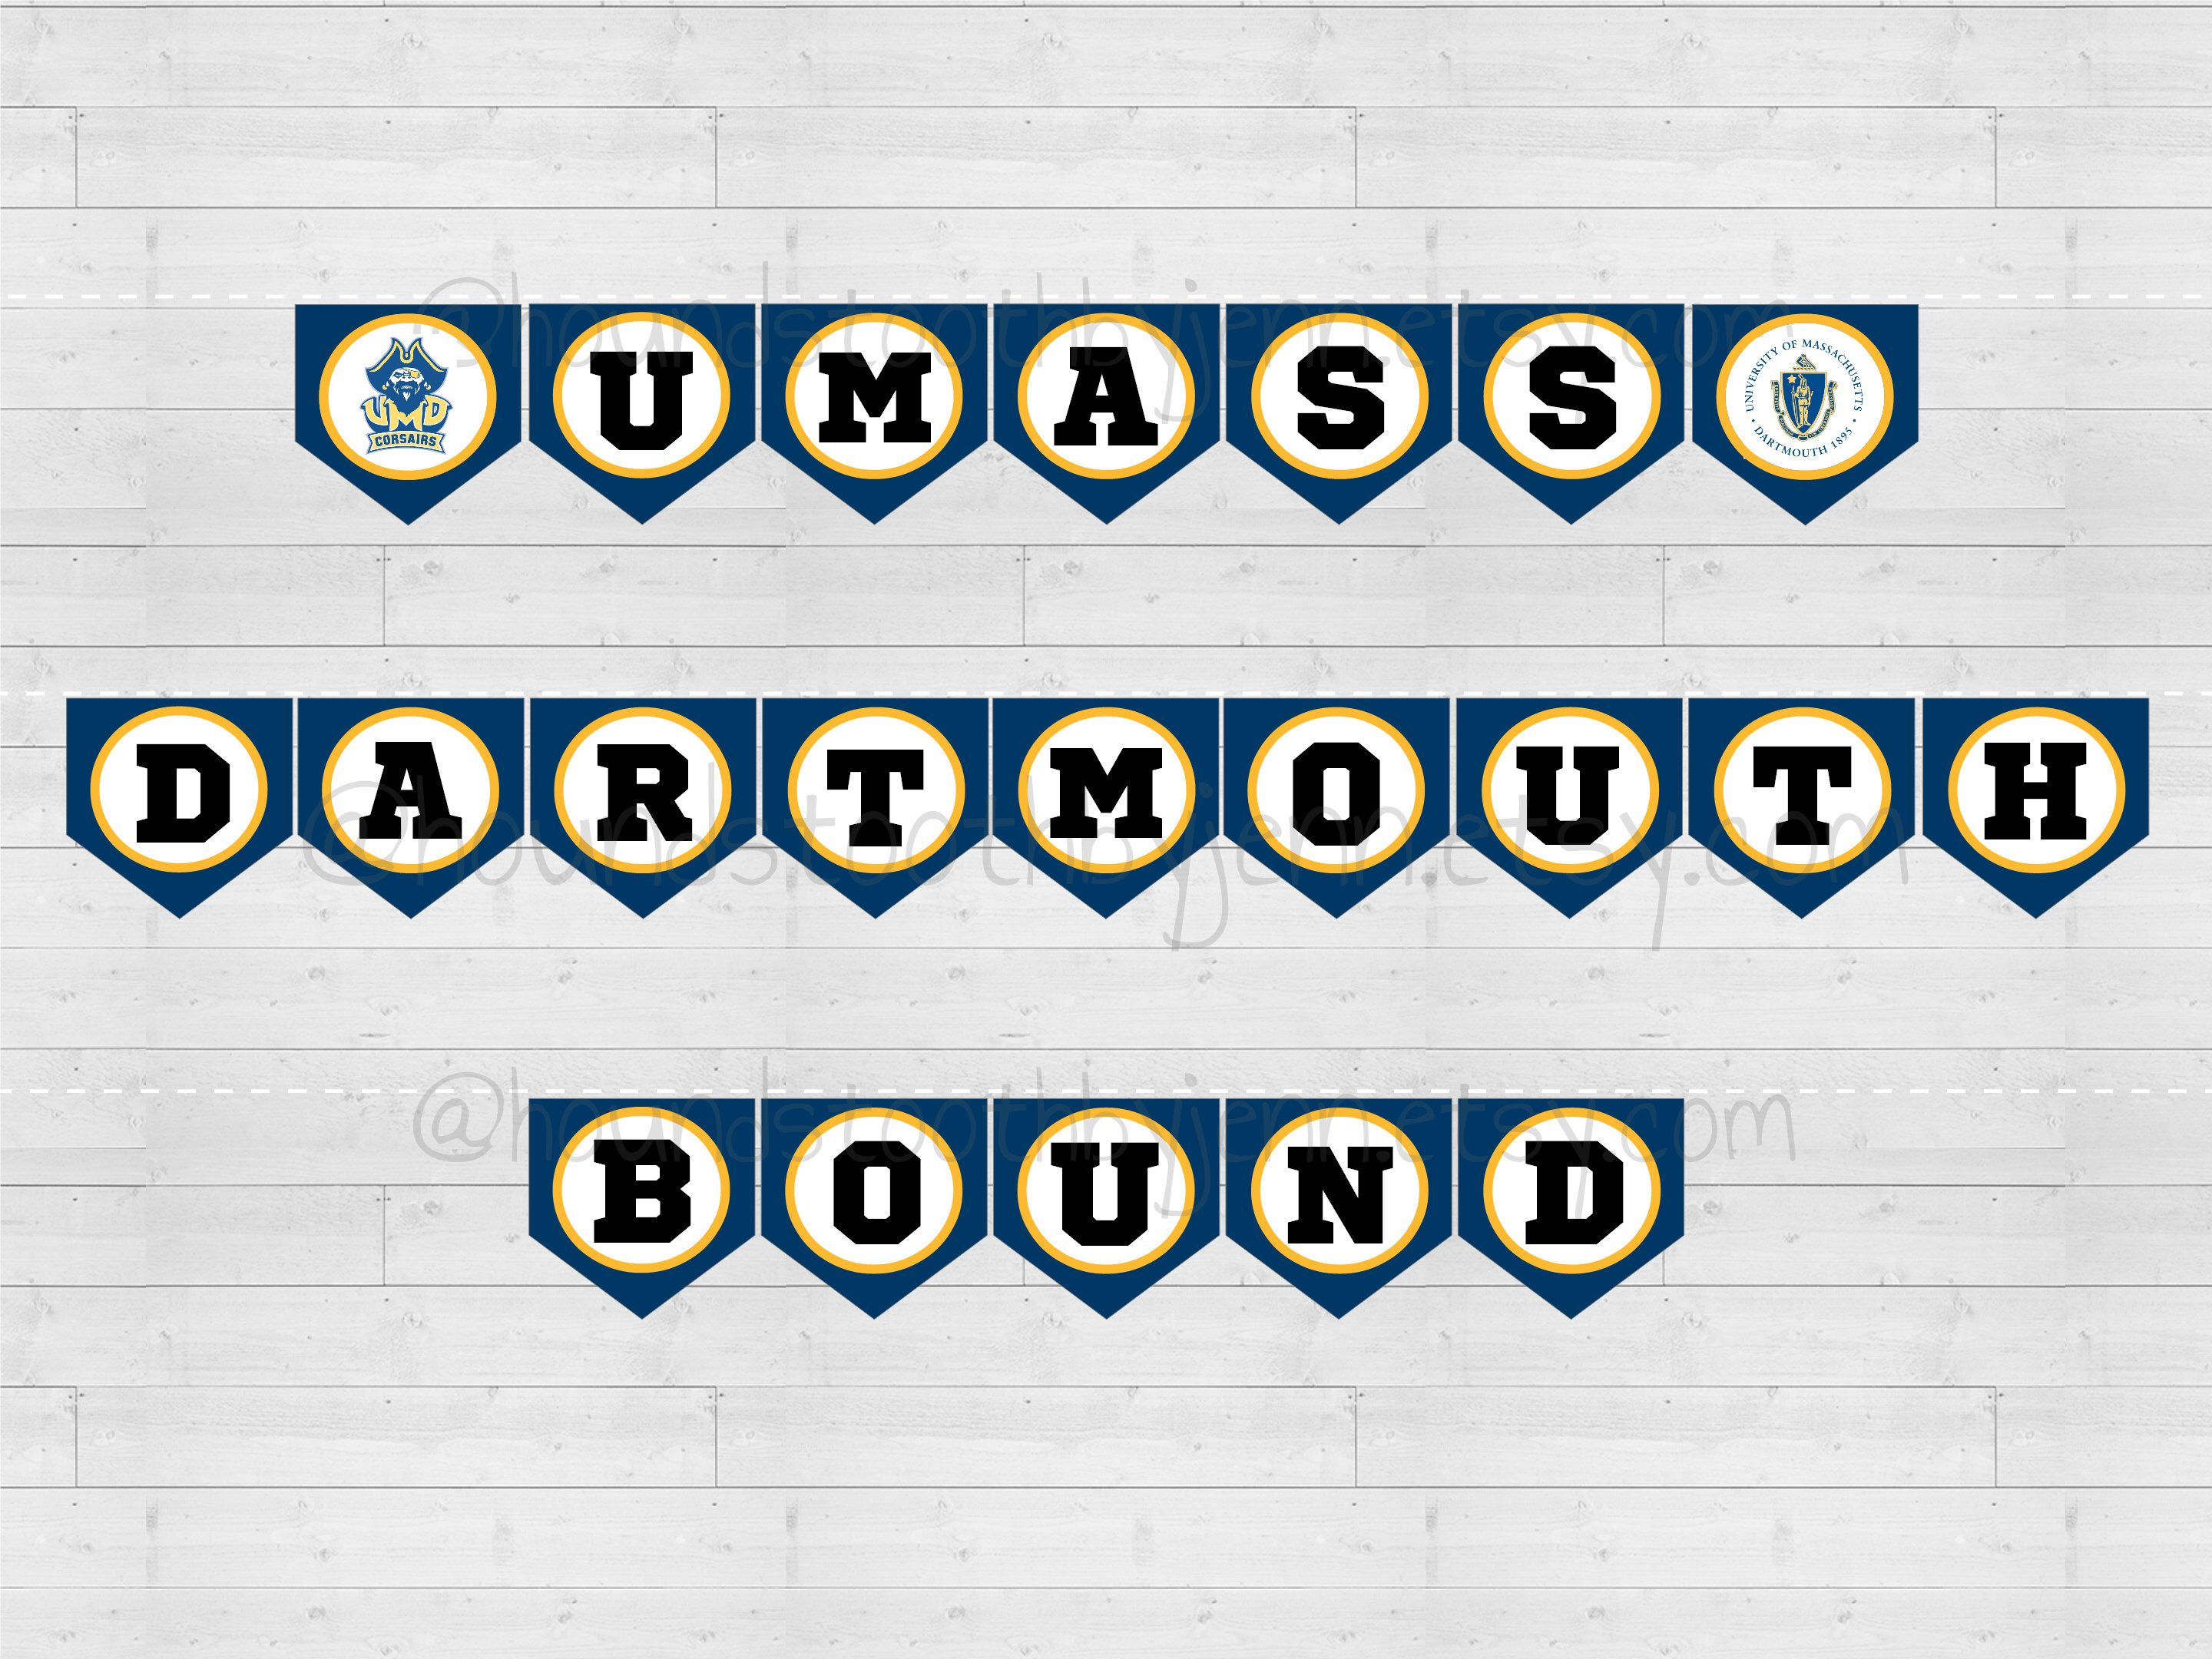 graphic regarding Printable Pennants referred to as UMASS DARTMOUTH Sure Banner Printable! UM Dartmouth